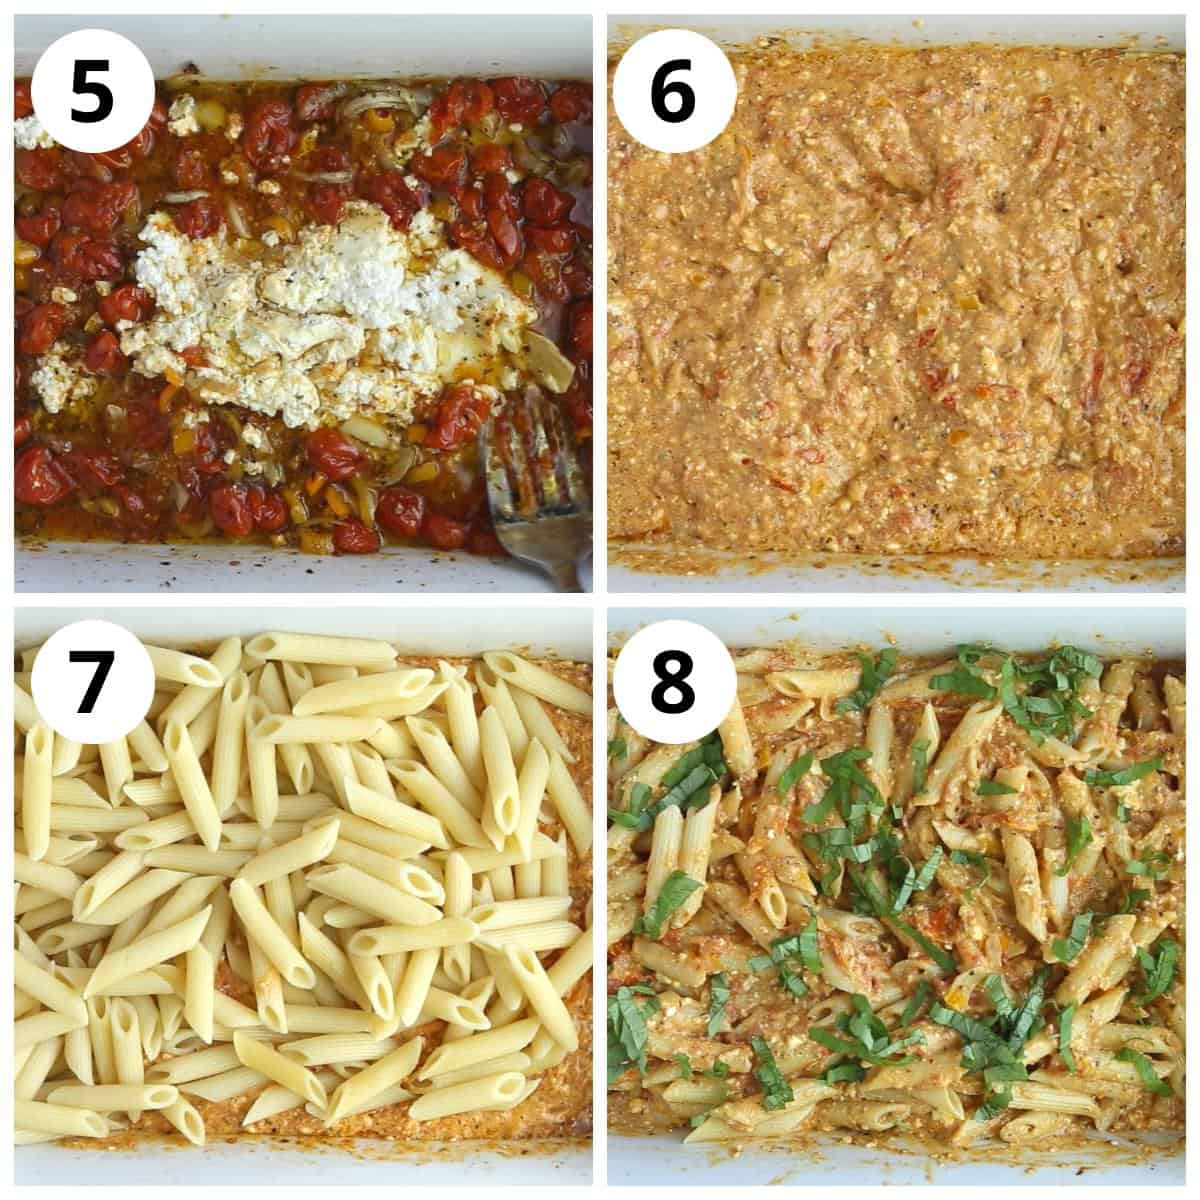 Baked Feta pasta Steps for making the sauce and mixing the pasta